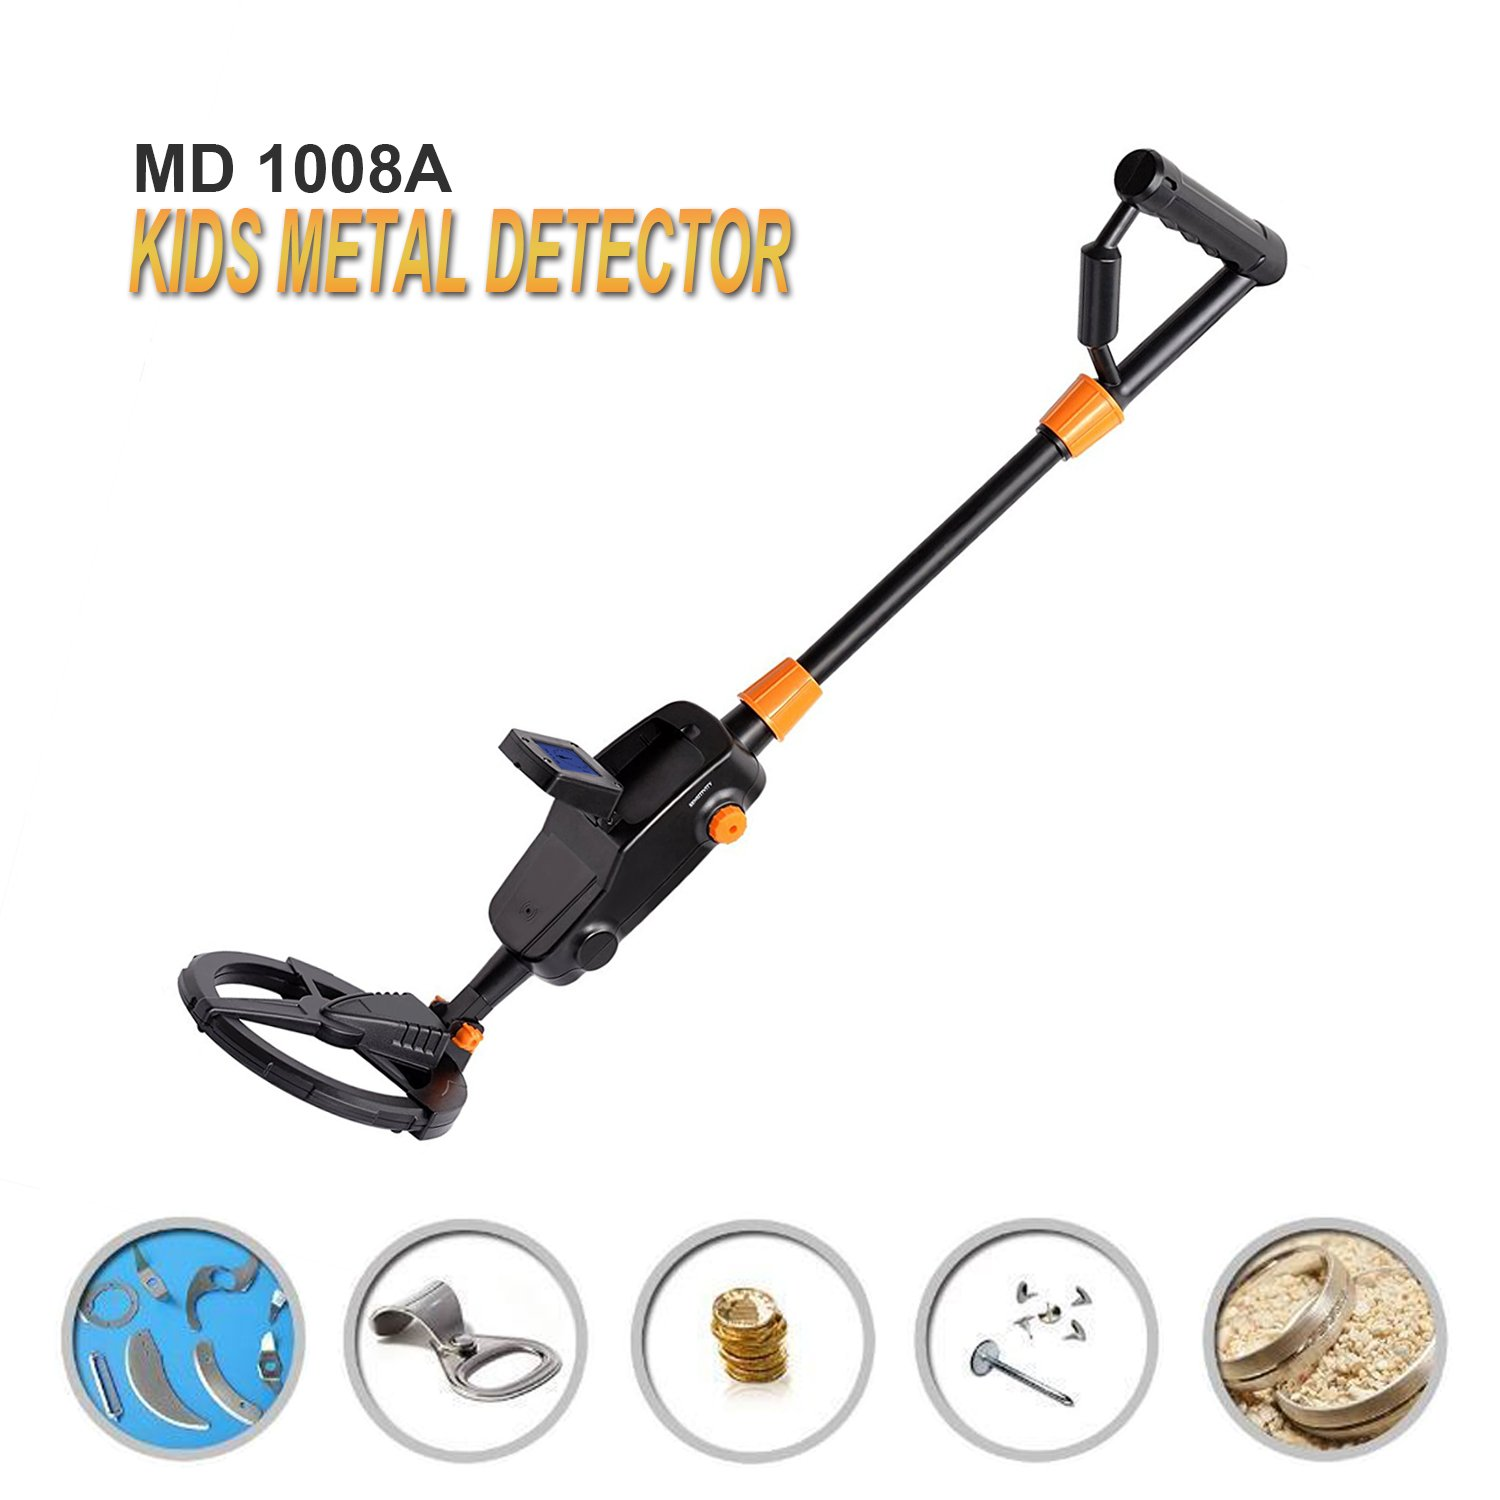 PiscatorZone Kids Metal Detector MD-1008A Underground Gold Finder Treasure Hunter Advanced Beach Searching Machine with LCD Display Waterproof Dial by PiscatorZone